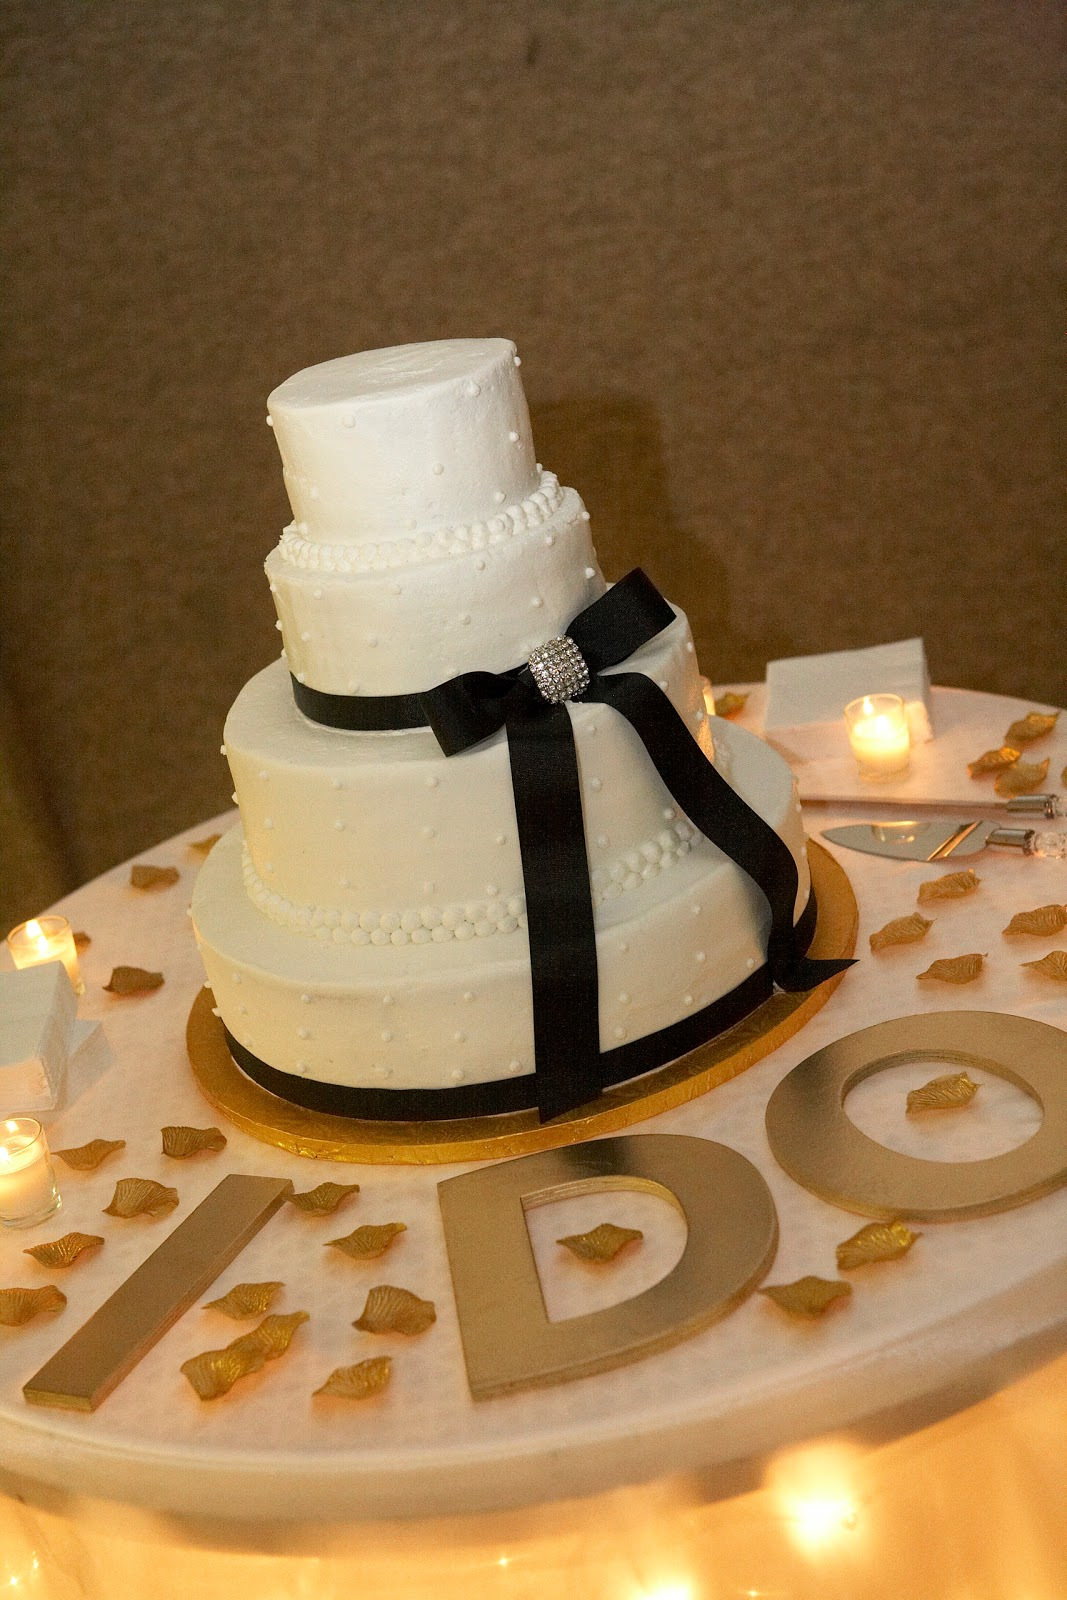 Cake Decoration Wedding : Wedding Cake Display Table on Pinterest Cake Table ...